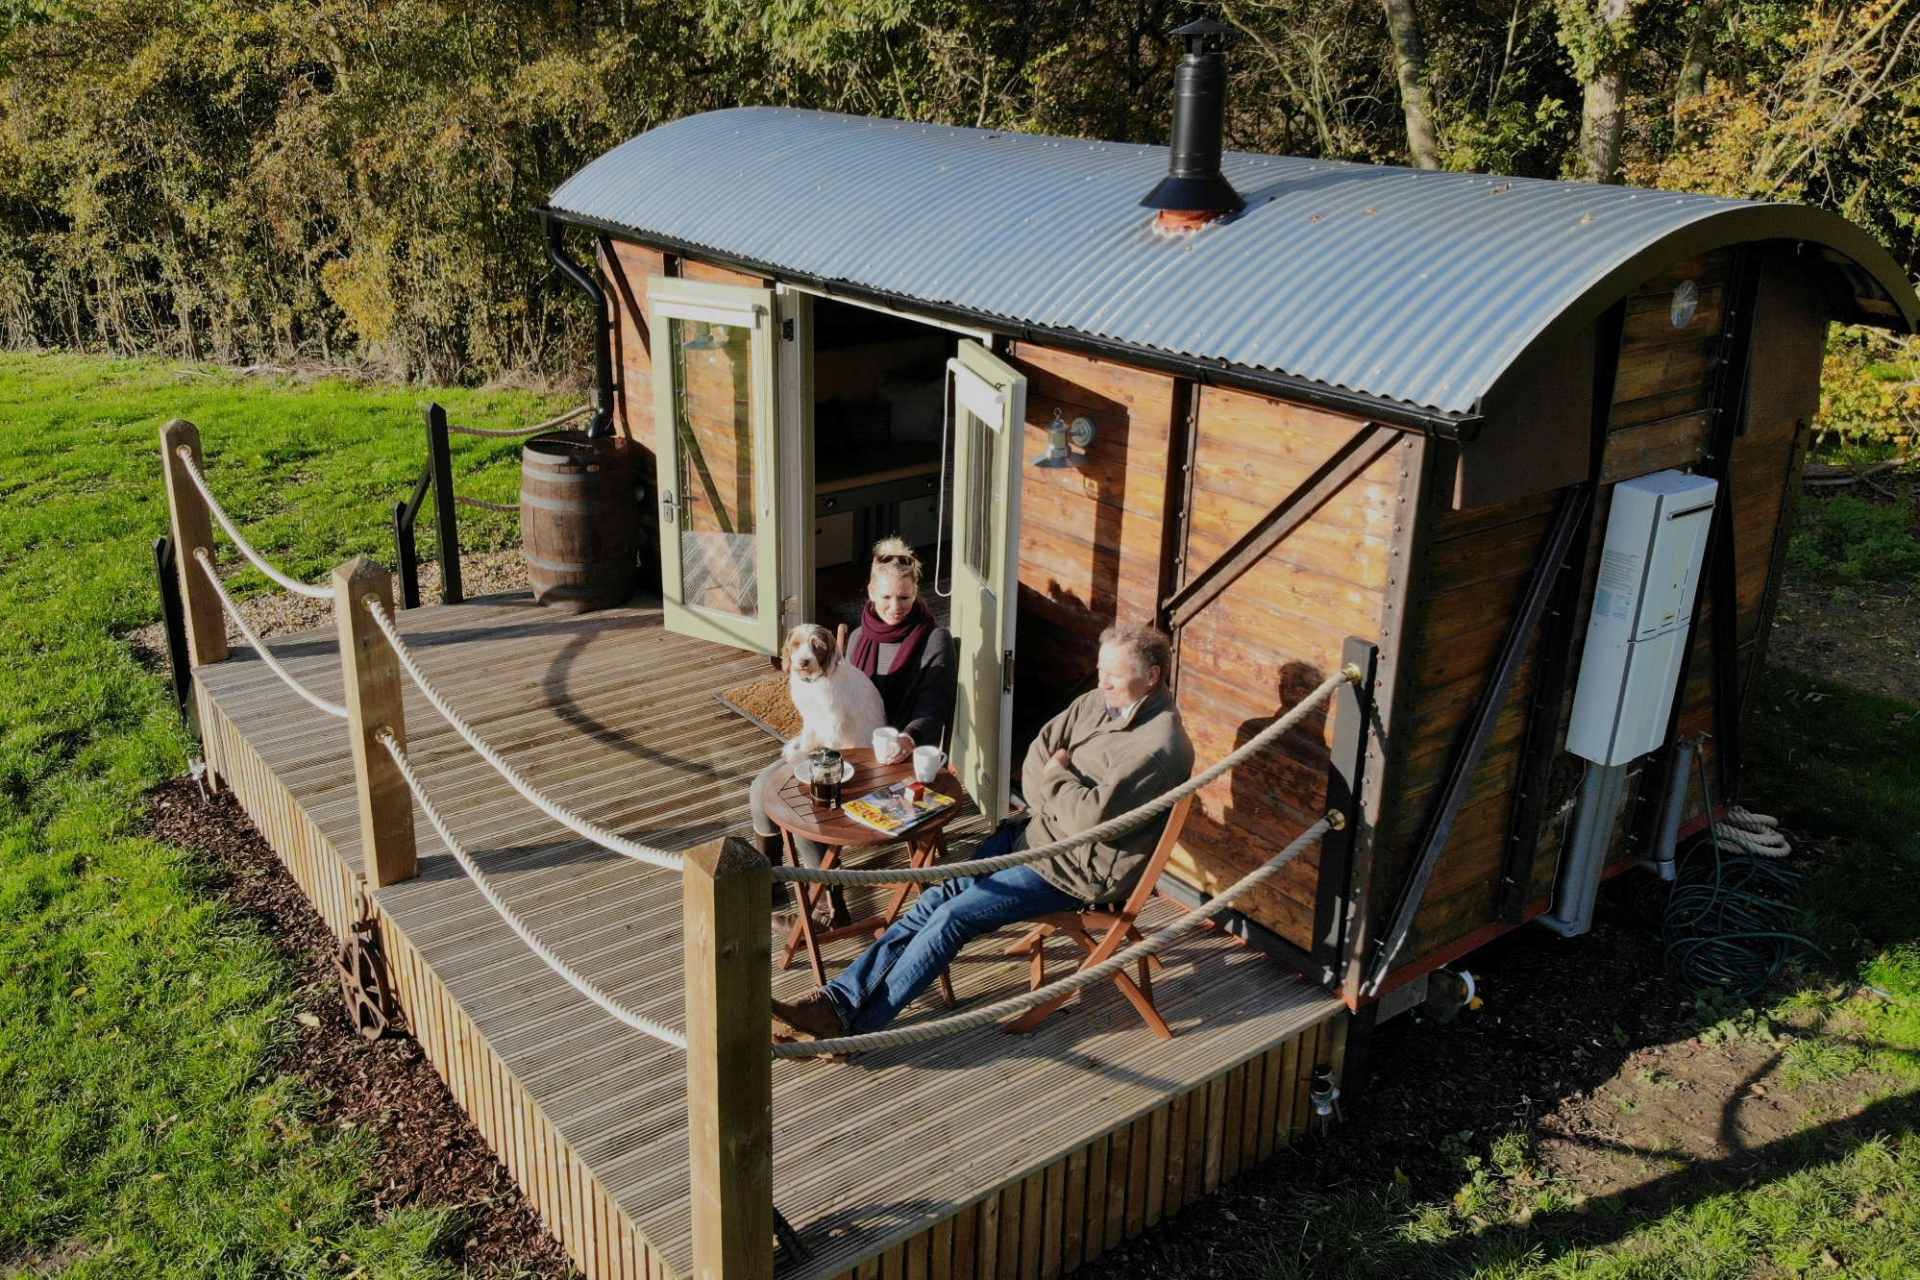 couple-and-dog-sat-on-decking-outside-choo-choo-moo-victoria-victorian-carriage